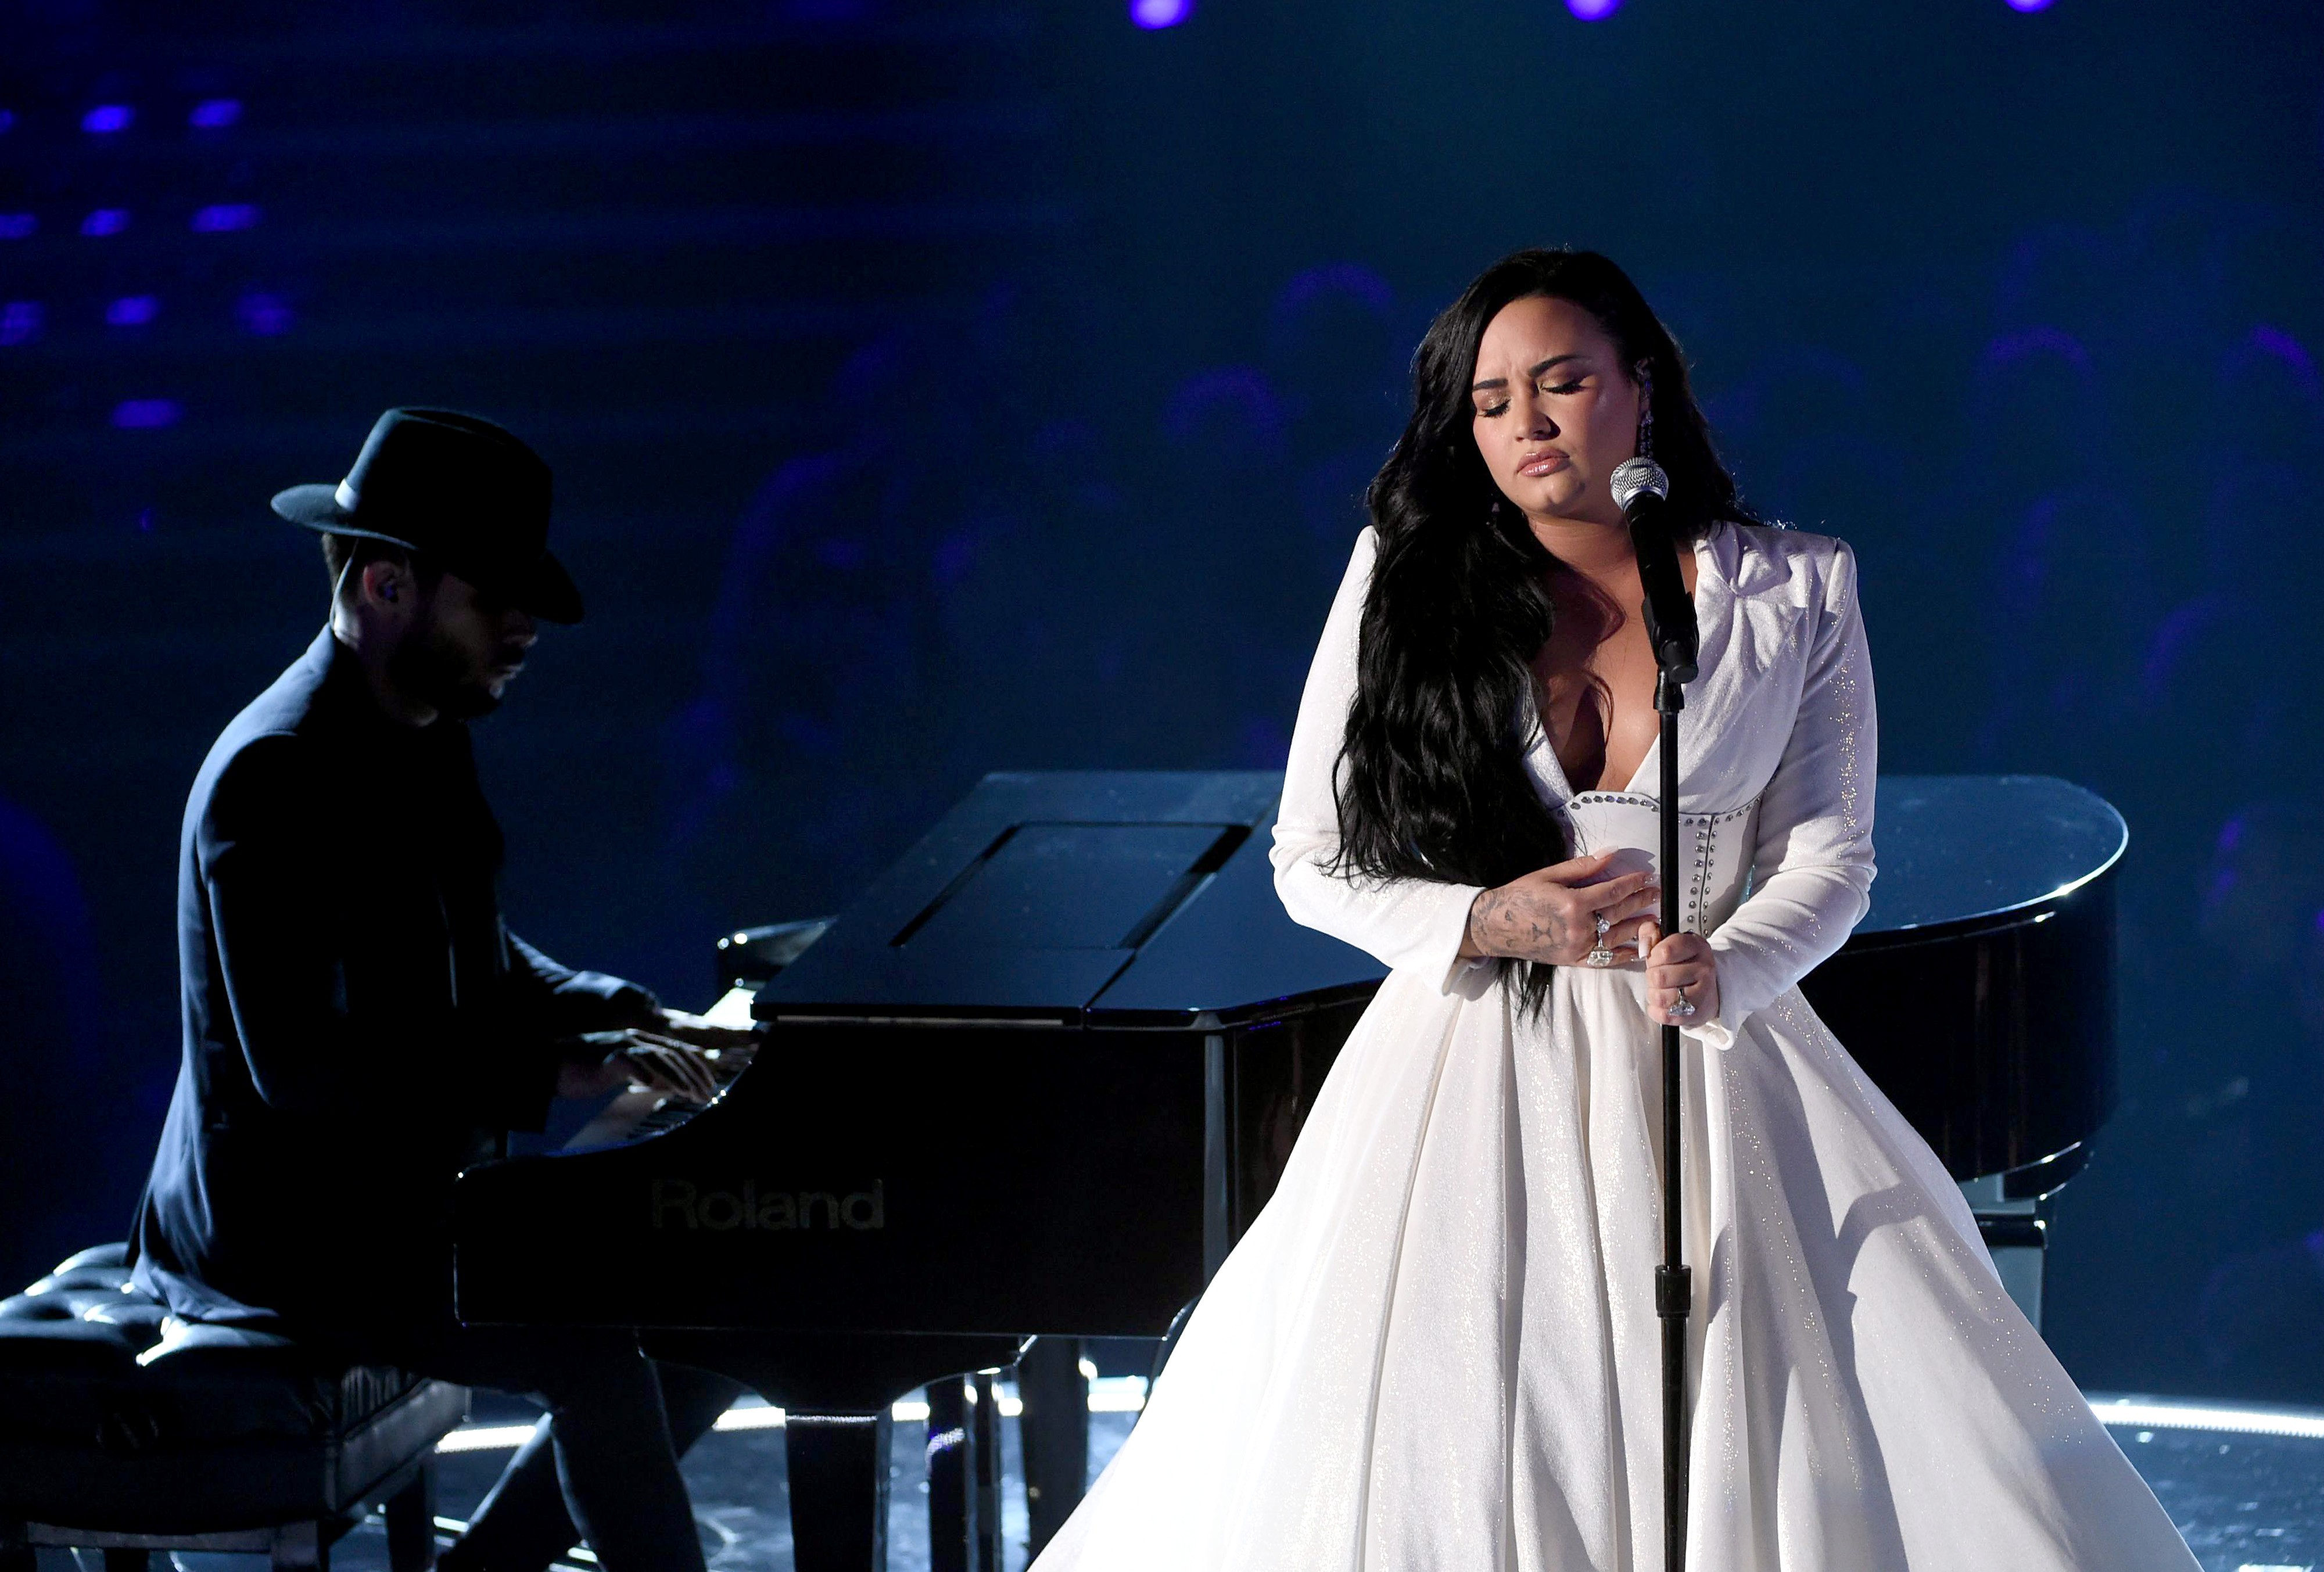 Demi Lovato canta no Grammy 2020 - KEVIN WINTER / GETTY IMAGES NORTH AMERICA / AFP